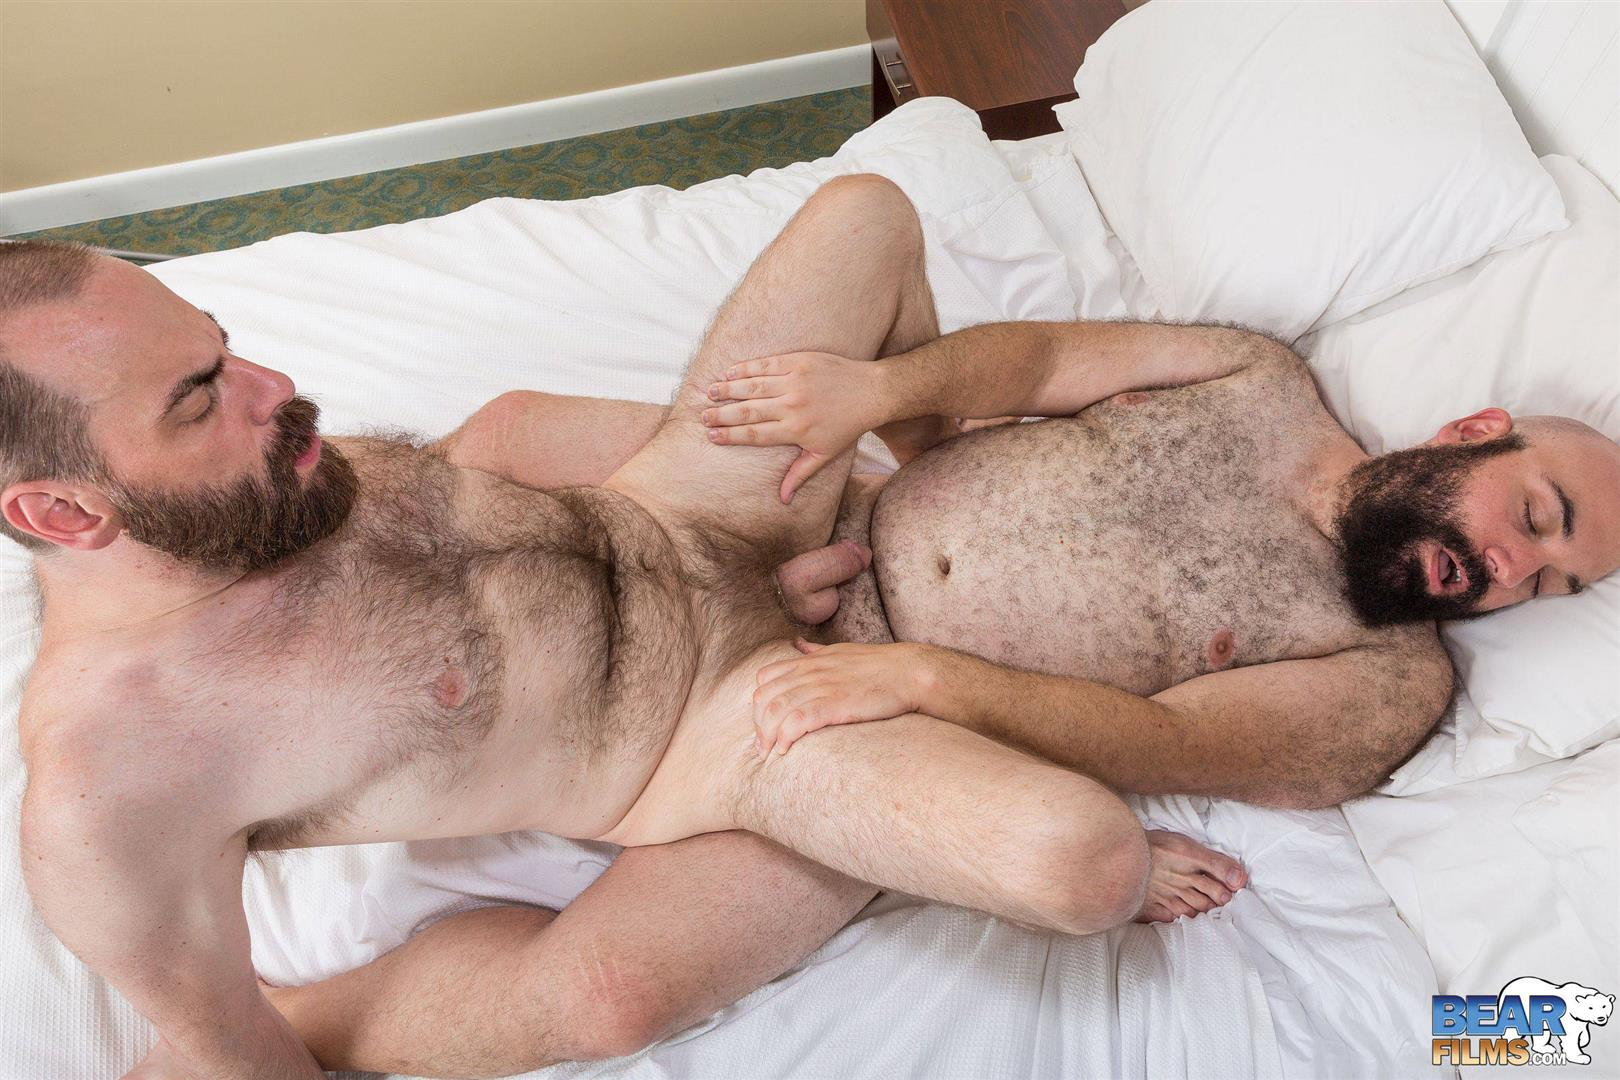 Bear-Films-Rock-Hunter-and-Steve-Sommers-Chub-Bears-Fucking-Bareback-Amateur-Gay-Porn-20 Husky Bears Fucking Bareback at Provincetown Bear Week